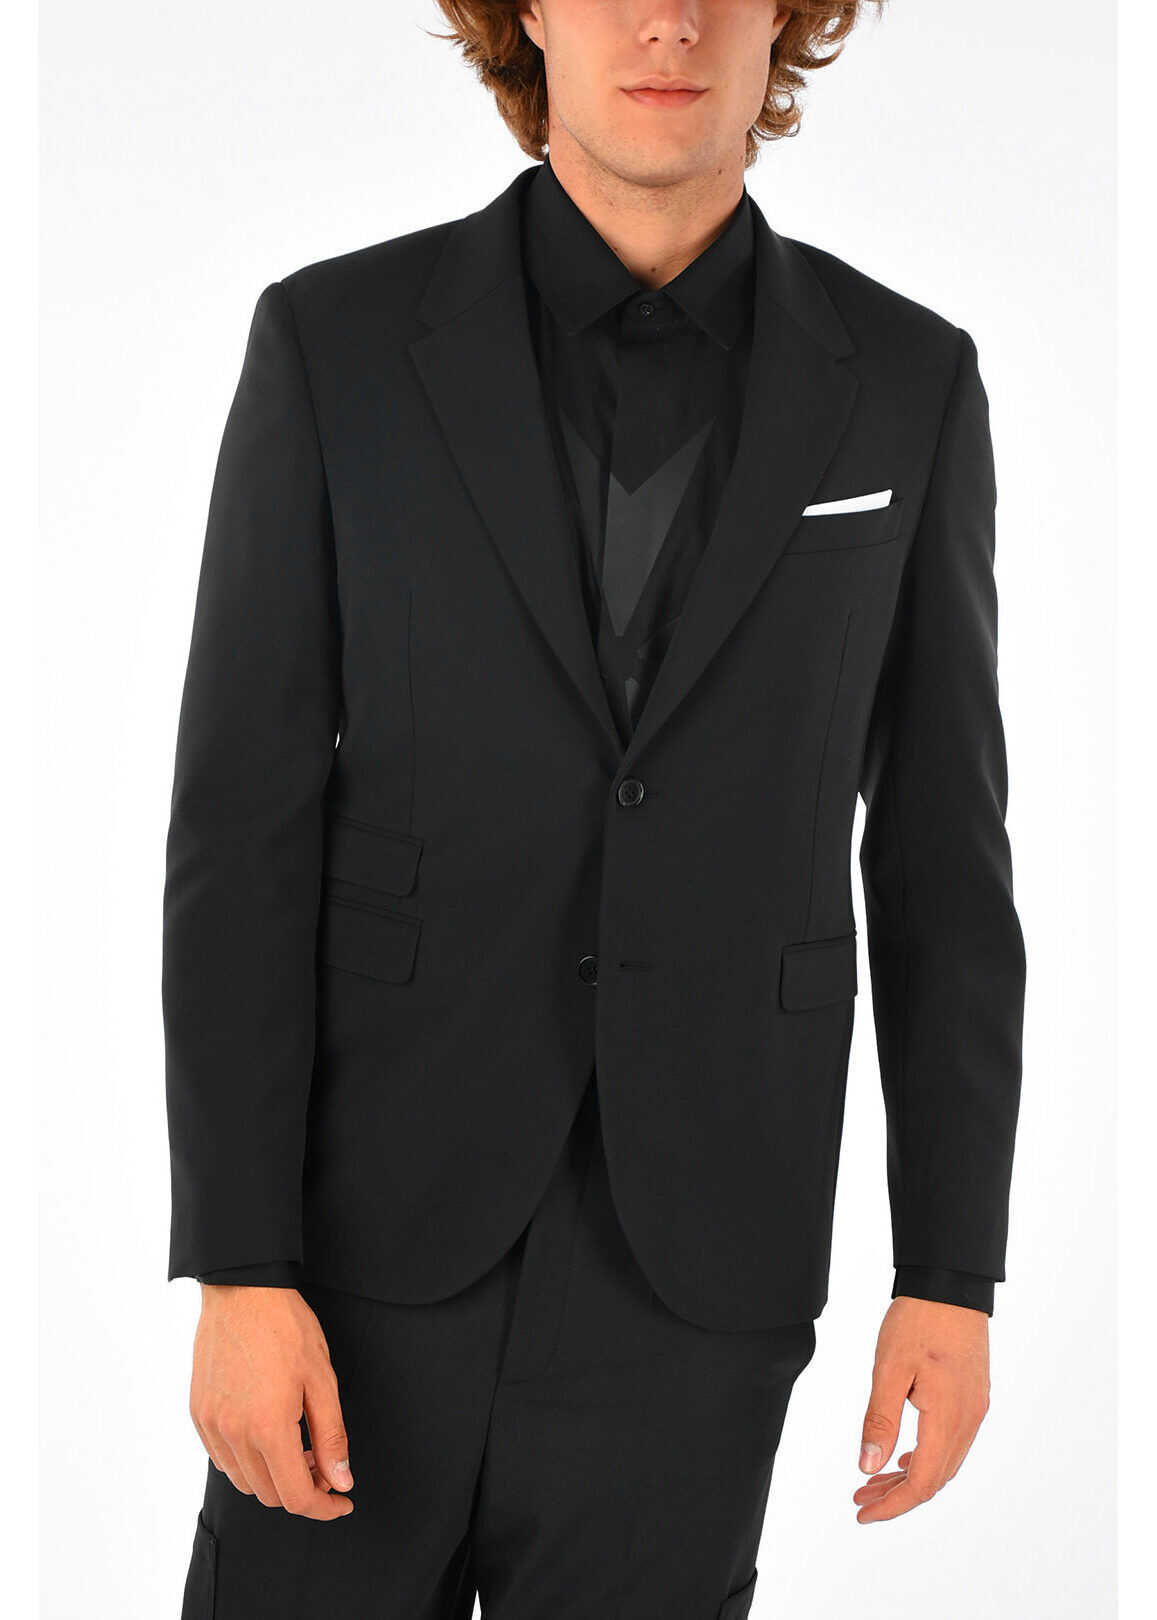 Neil Barrett Skinny Fit Blazer BLACK